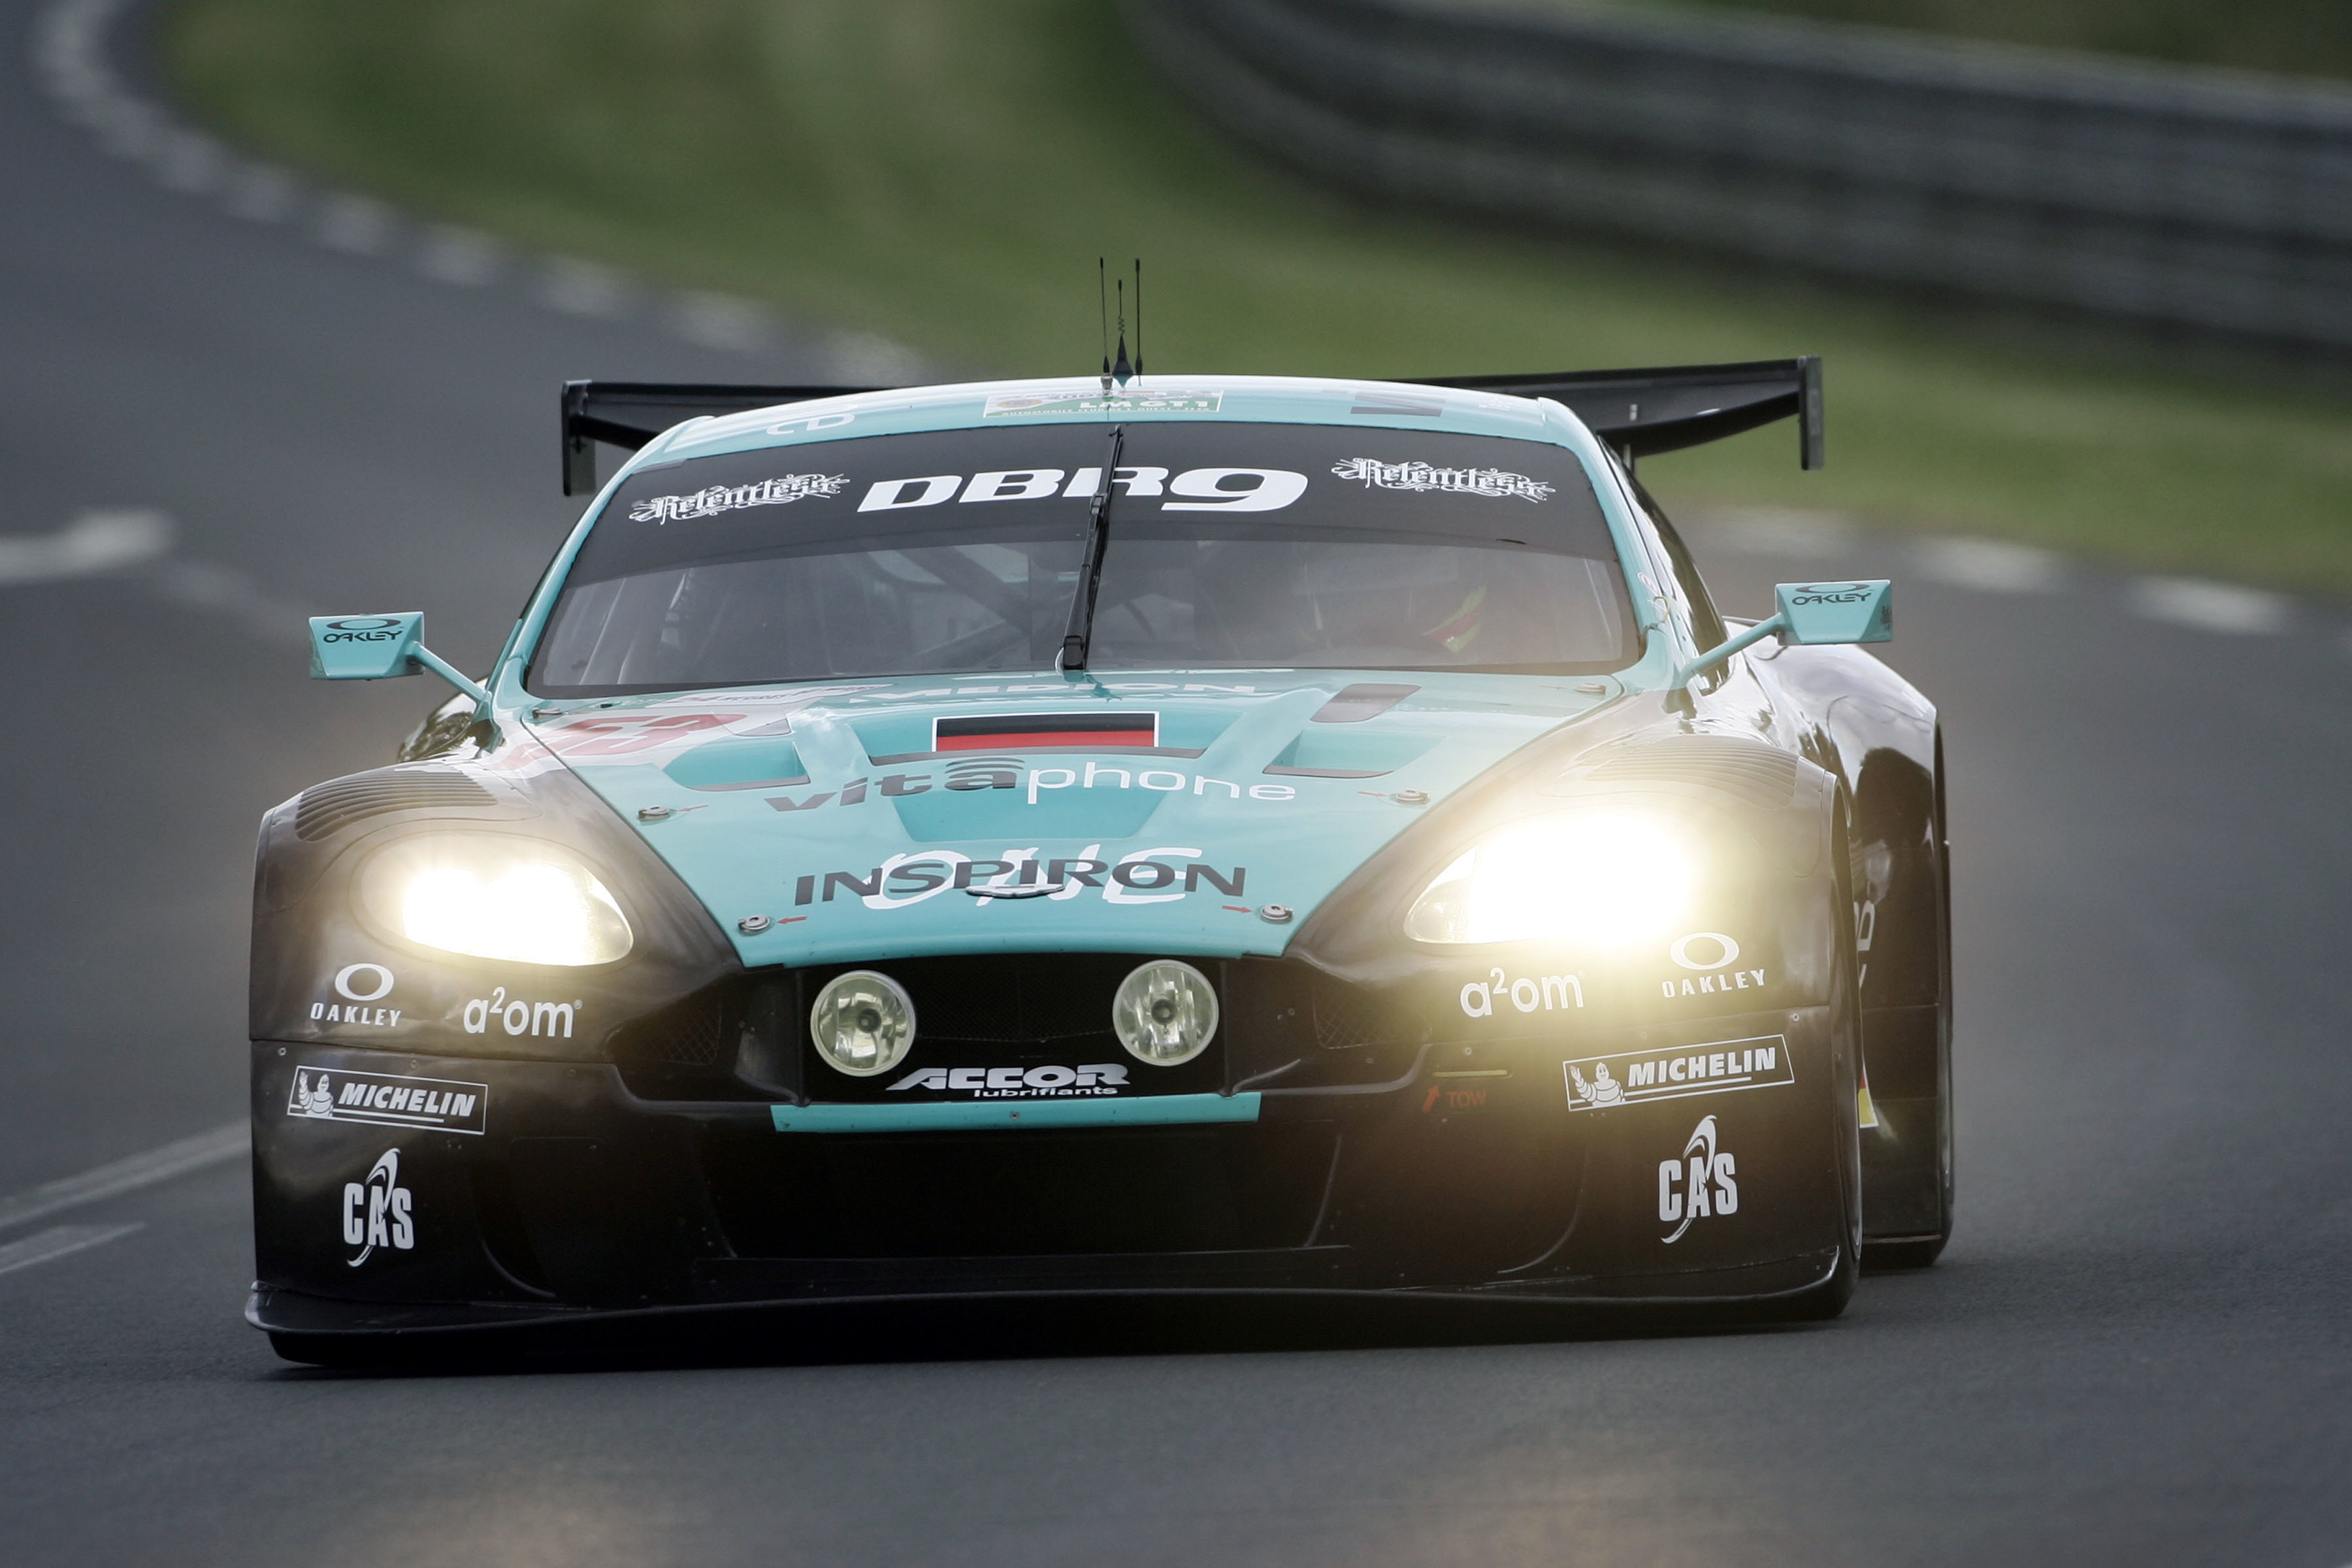 cars Aston martin race HD Wallpaper